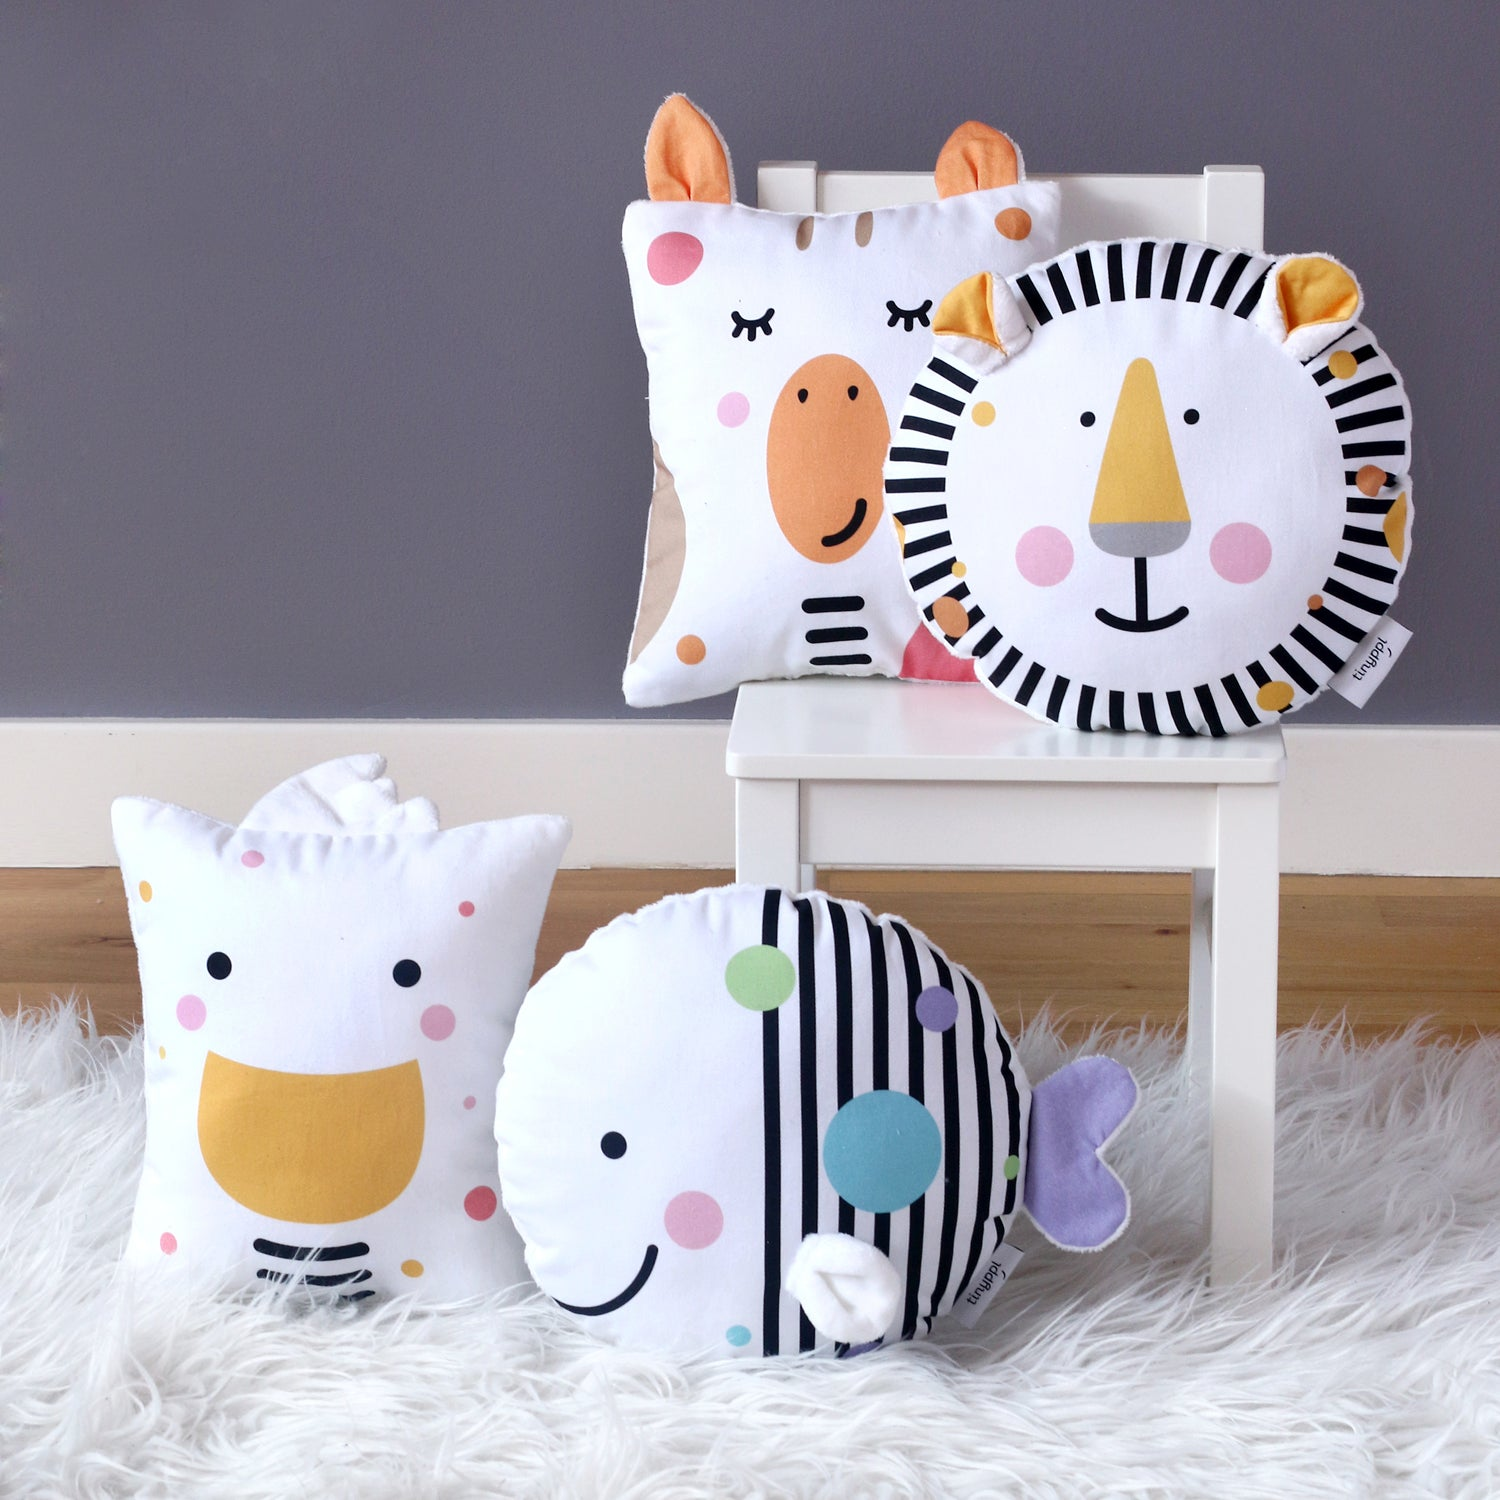 Cute kids cushions